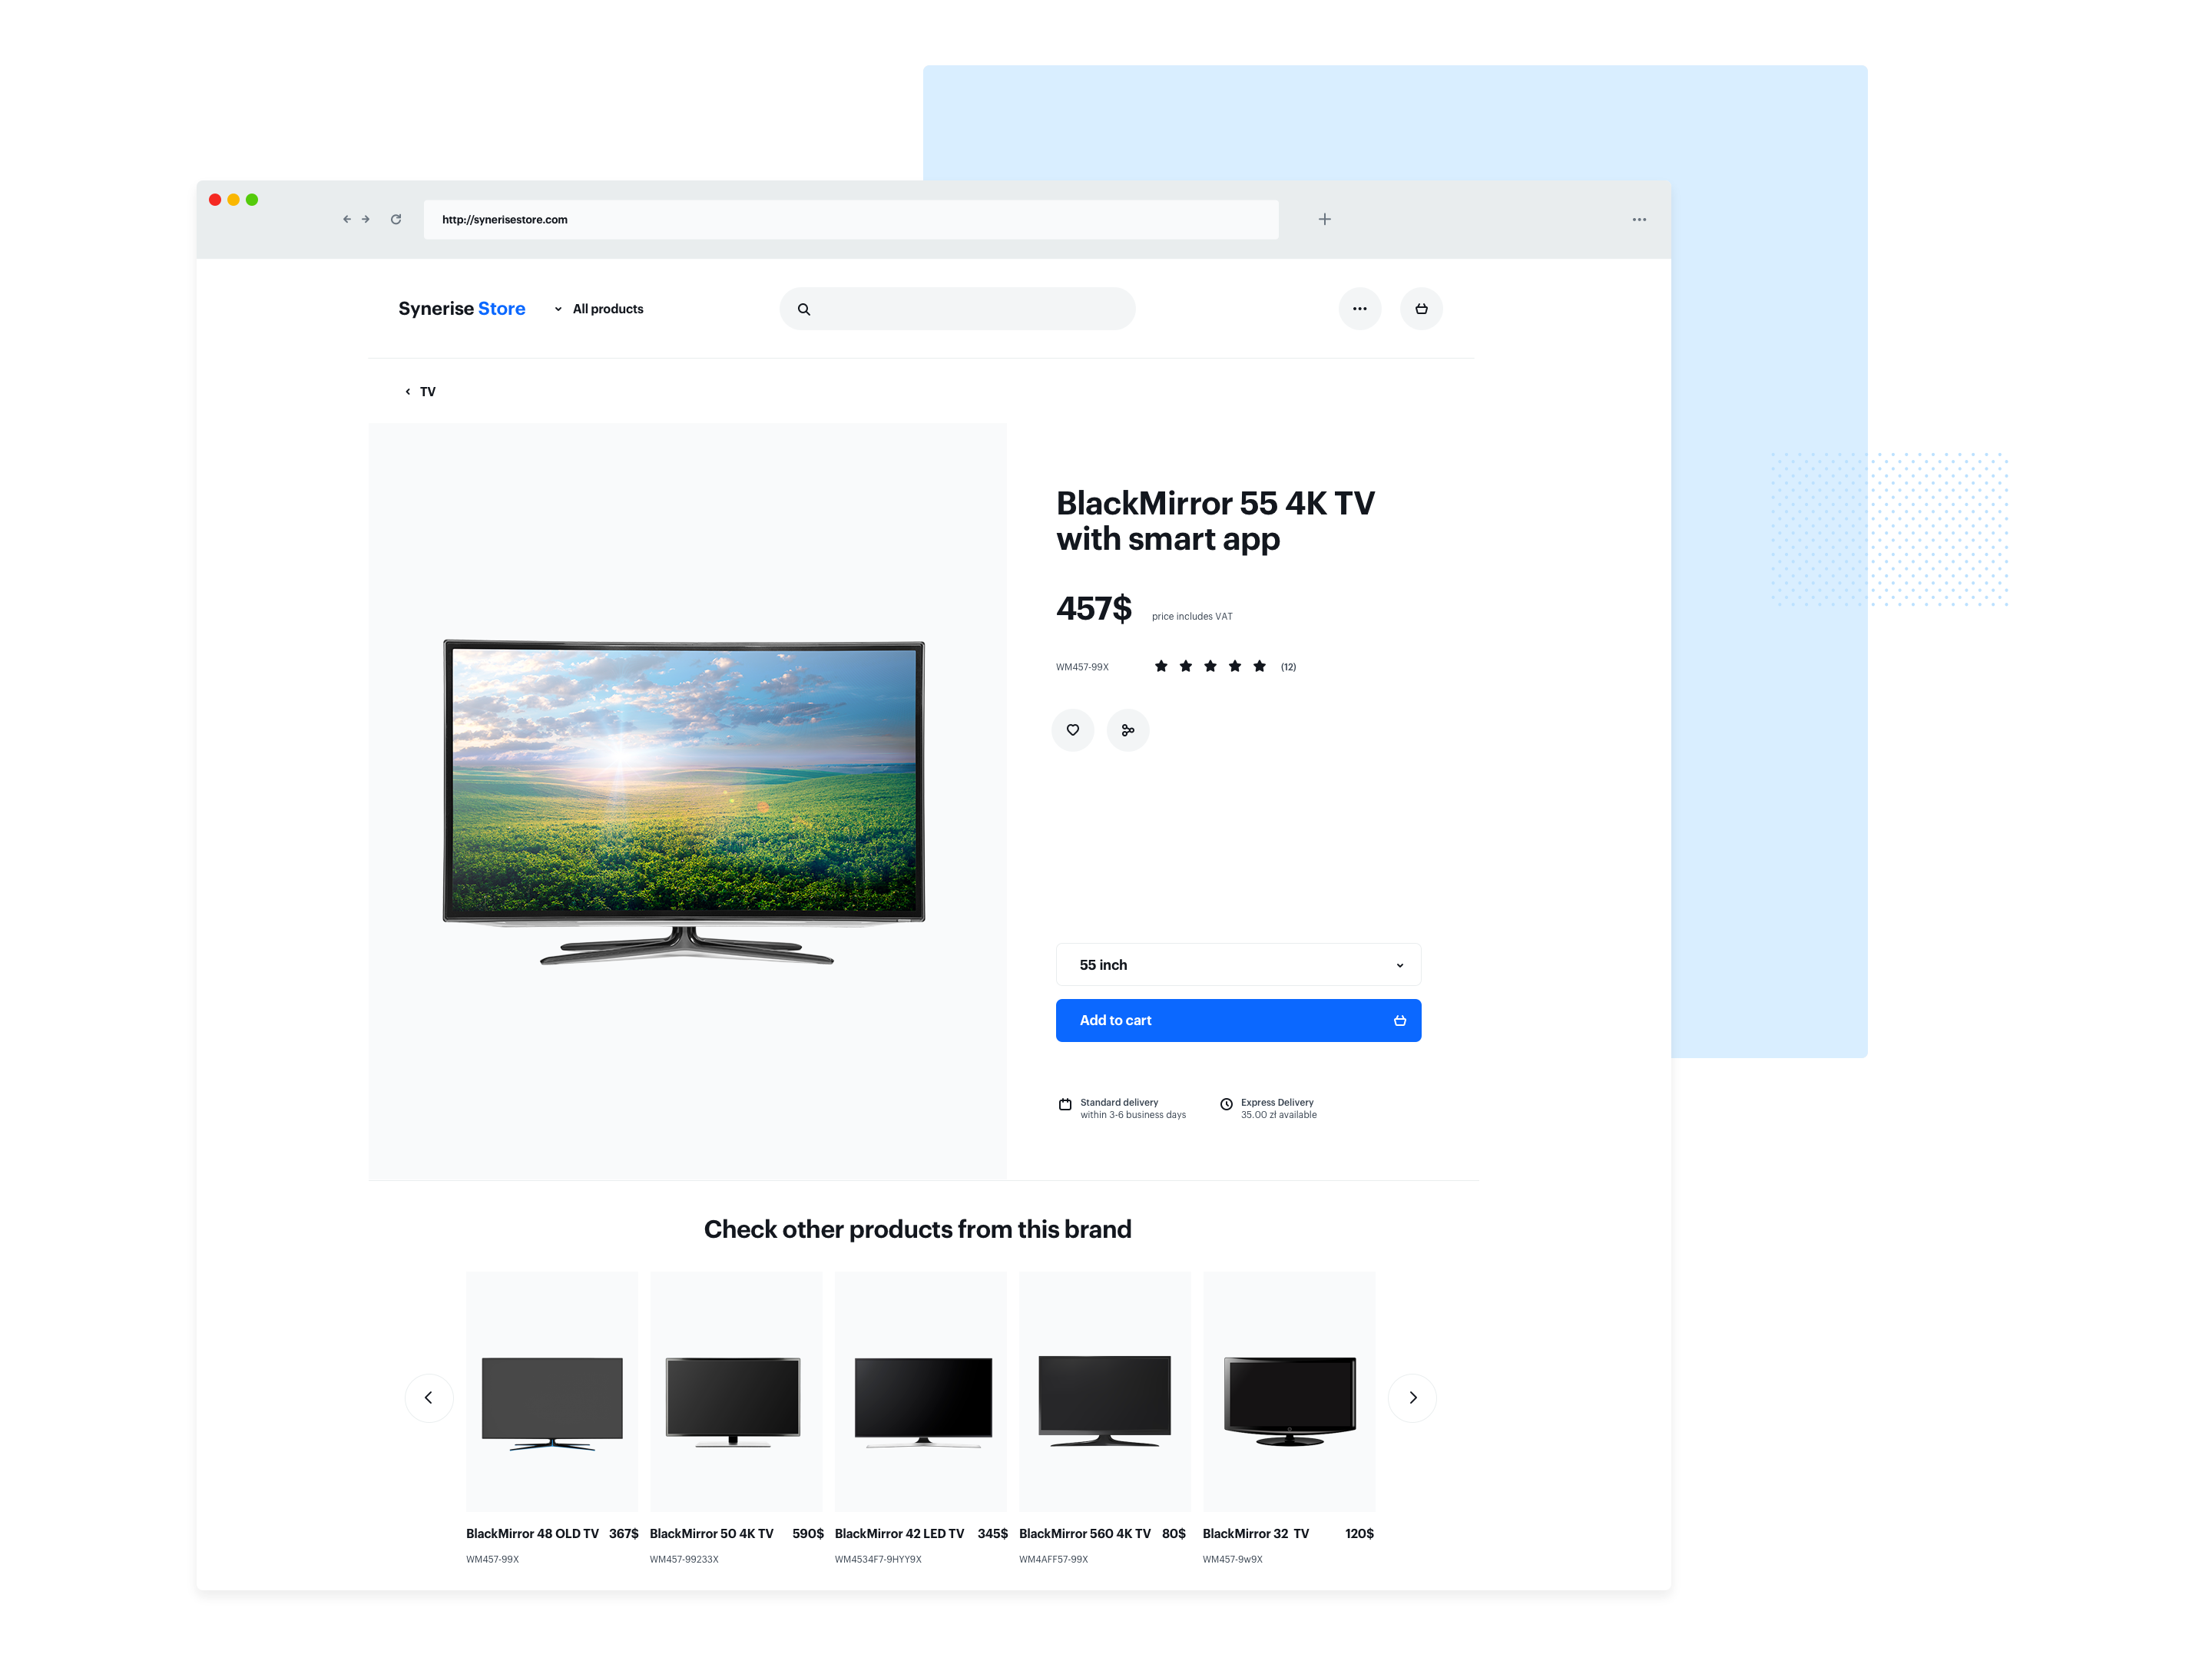 Screenshot presenting recommendations of products from the same brand